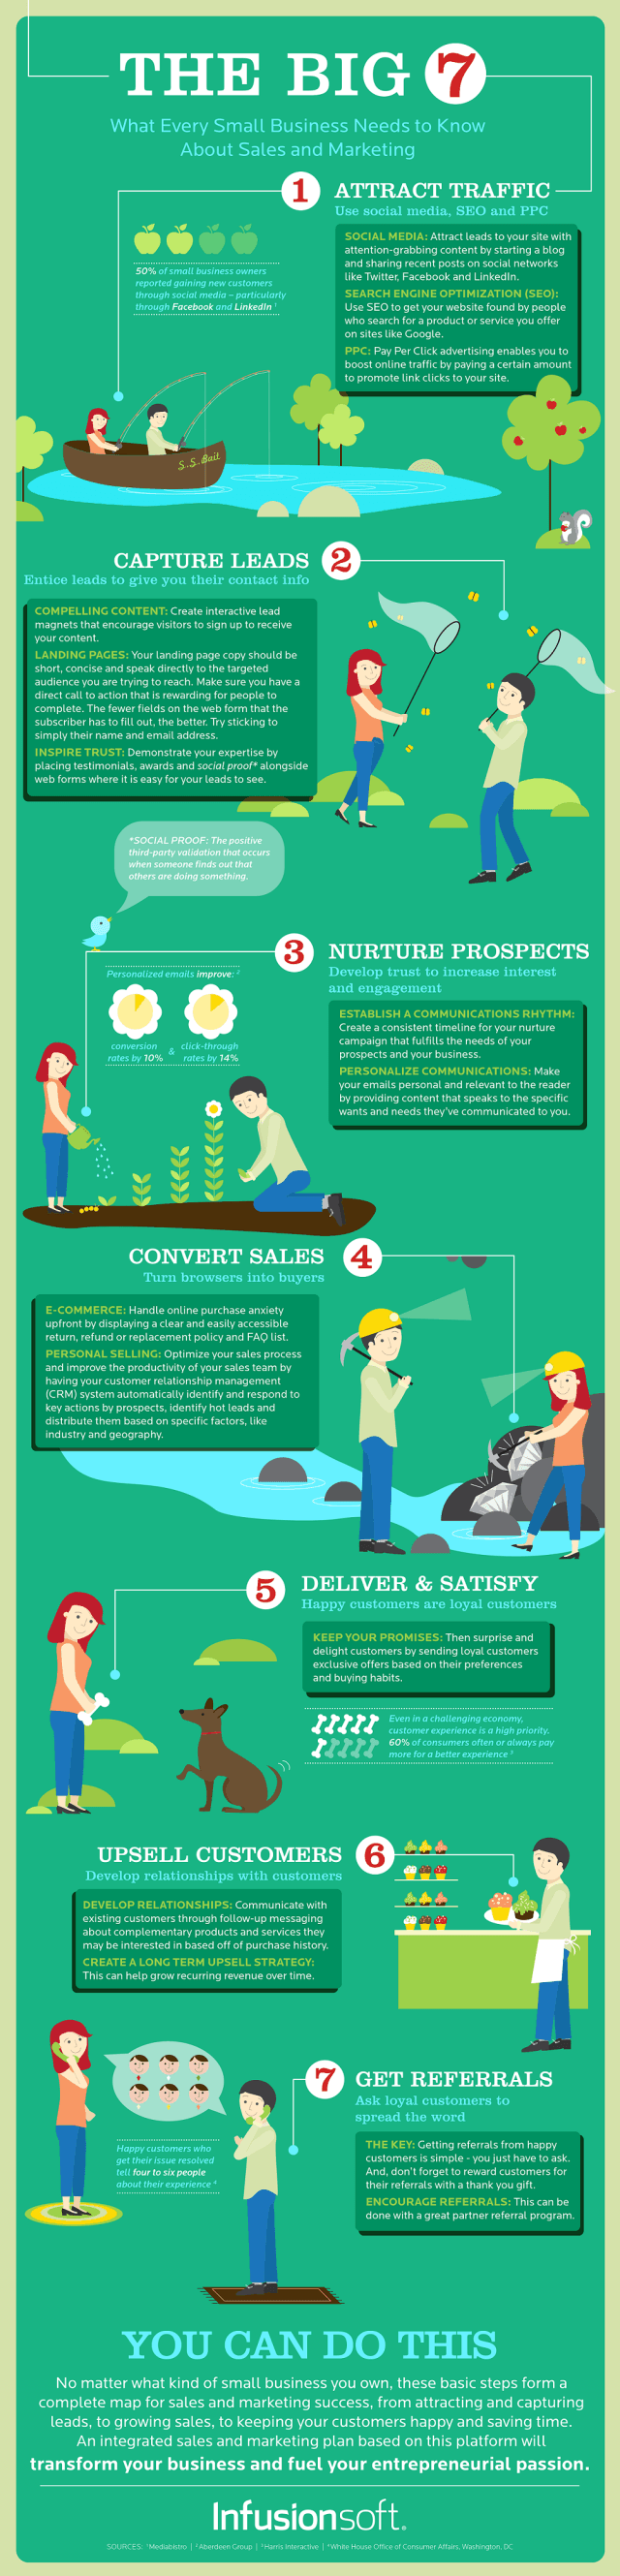 7-steps-small-business-sales-marketing